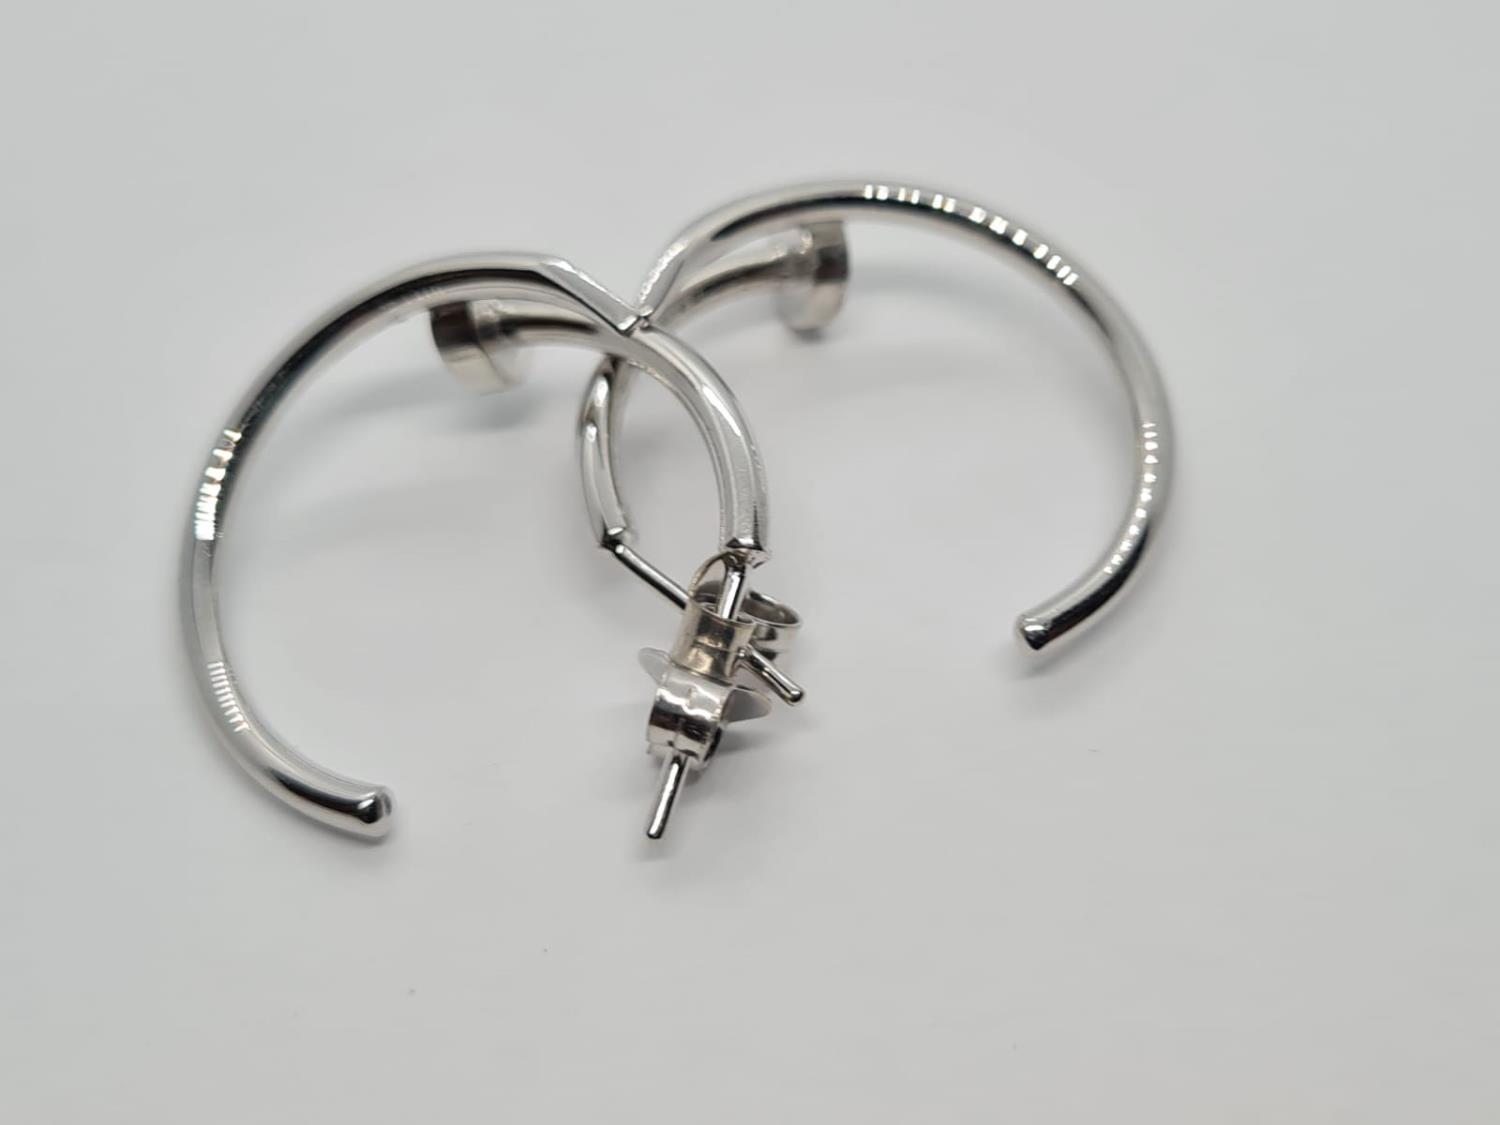 PAIR OF 9CT WHITE GOLD CARTIER STYLE EARRINGS, WEIGHT 5.5G - Image 3 of 4